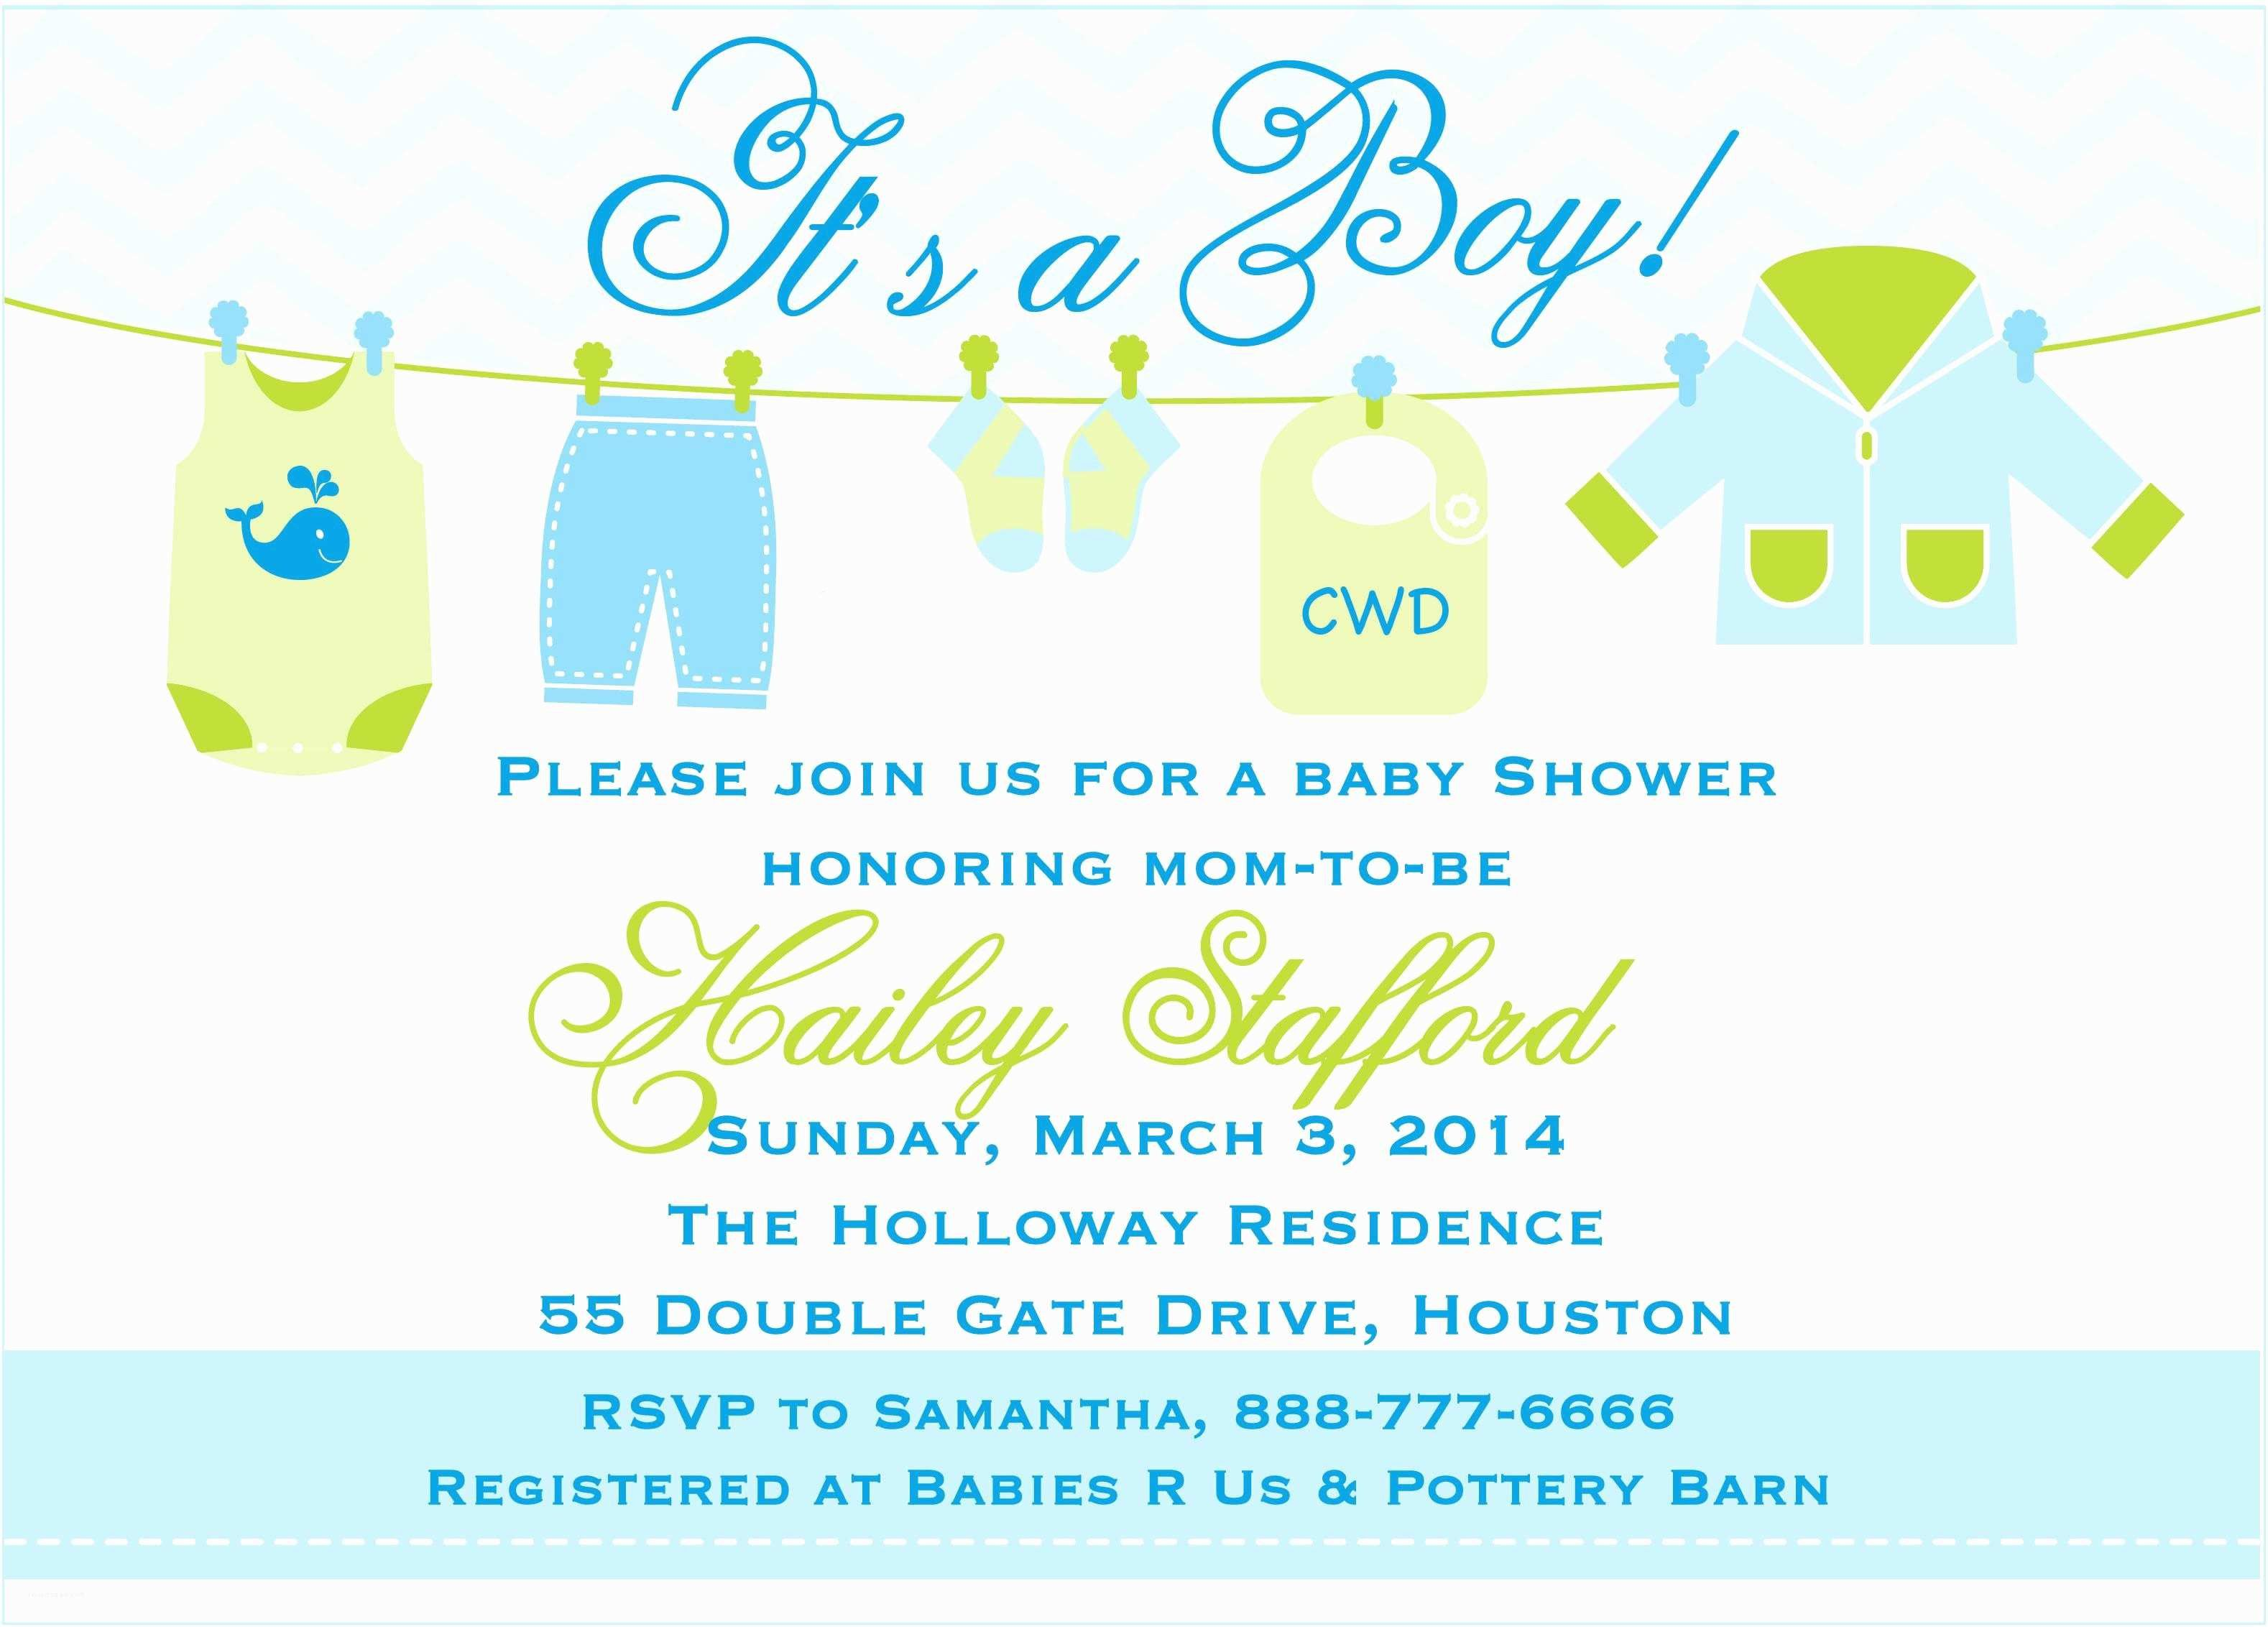 005 Striking Baby Shower Invite Template Word Highest Clarity  Work Invitation Wording Sample Format In M Free MicrosoftFull